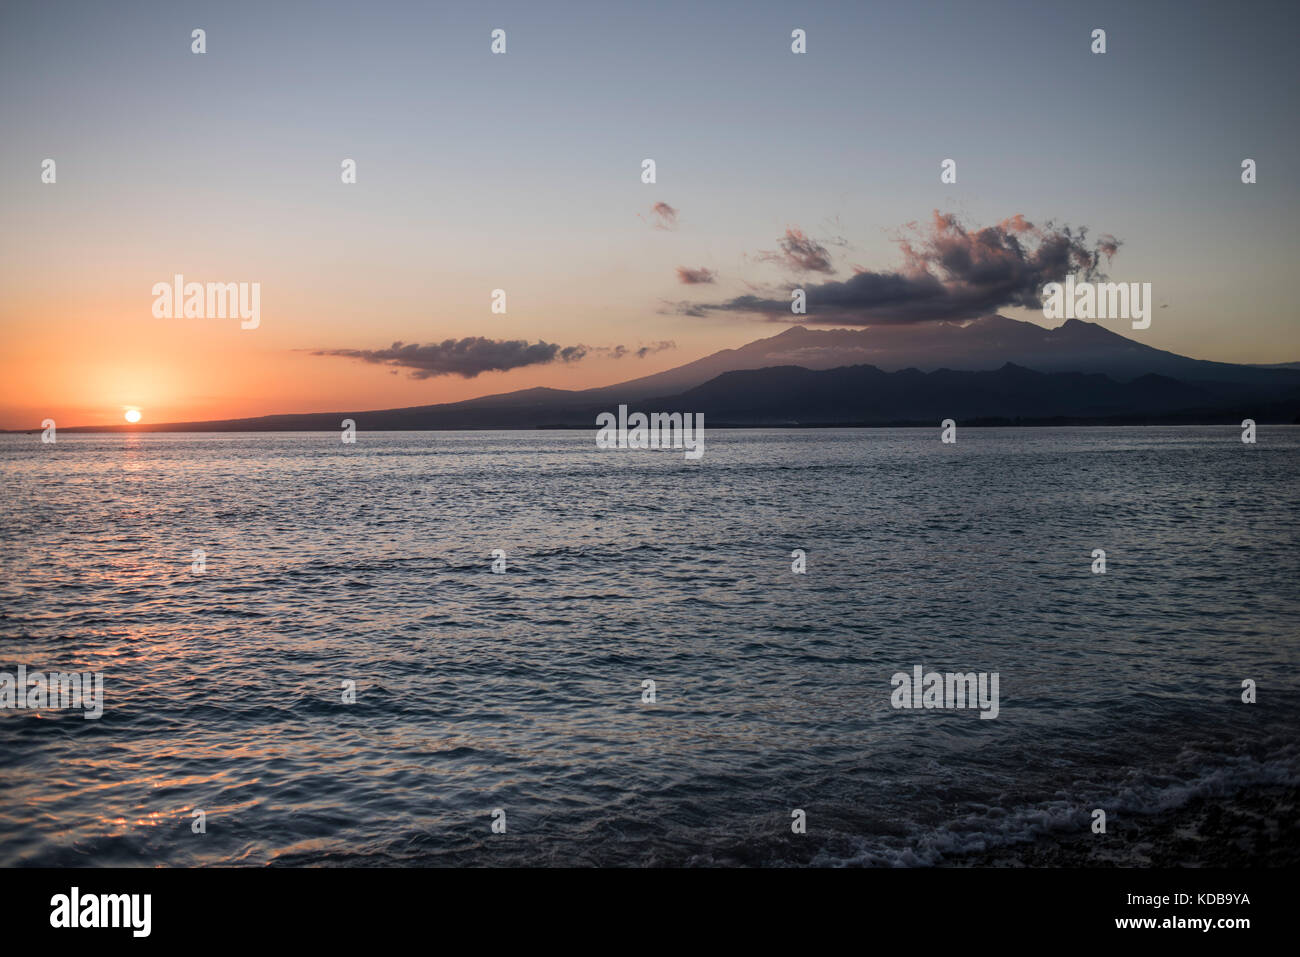 Sunrise in Gili Air, Gili Islands, Indonesia. - Stock Image